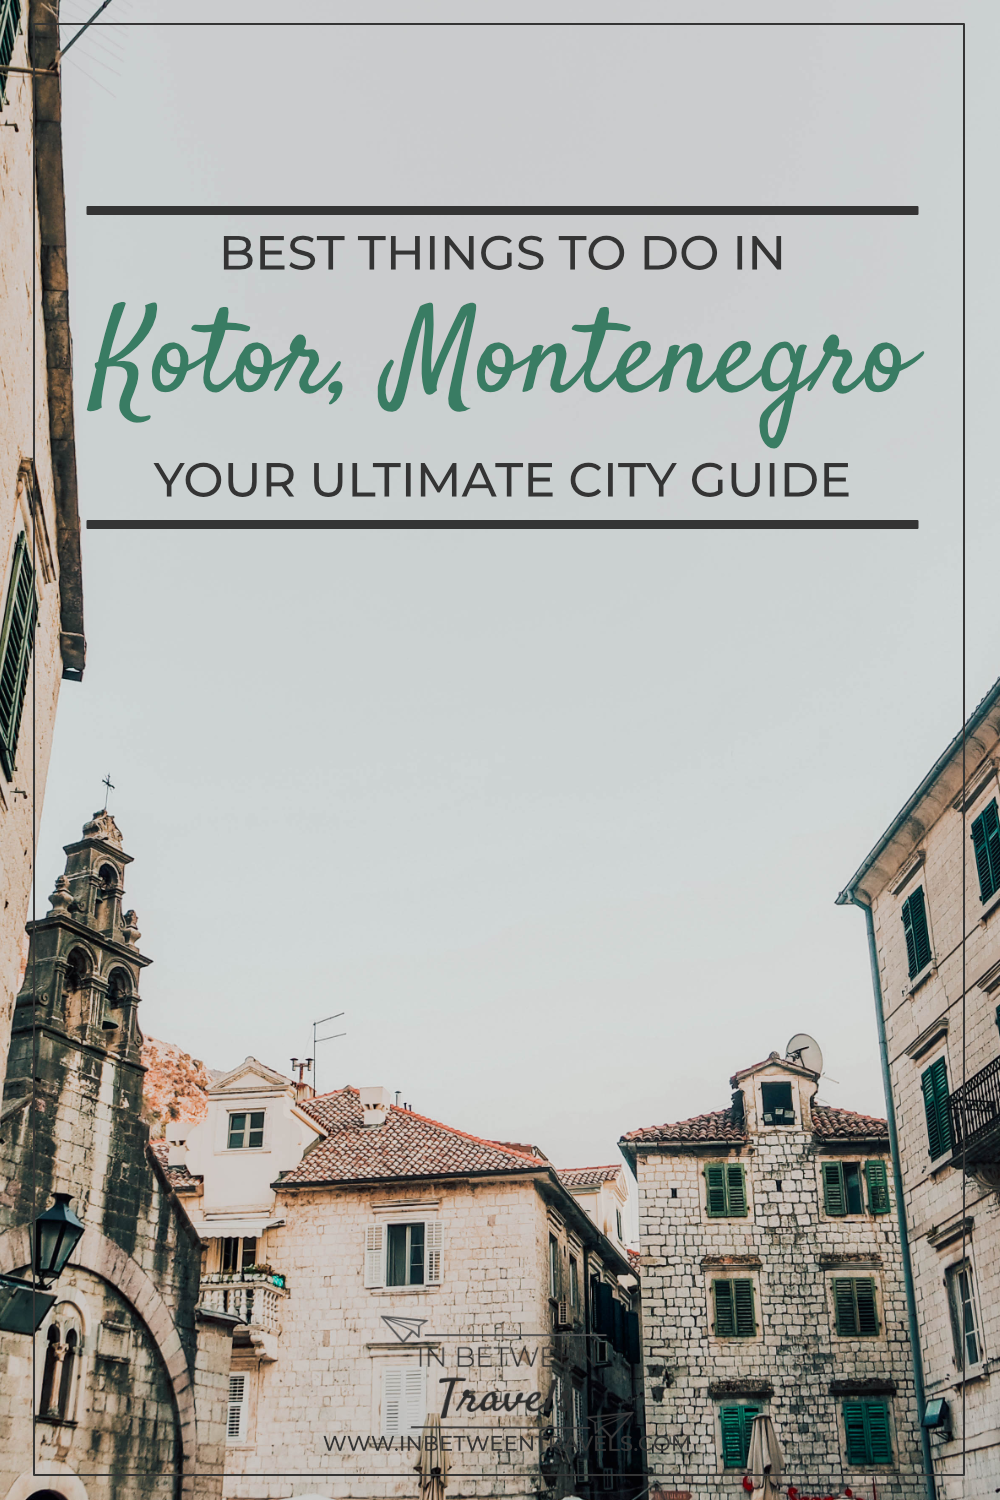 Kotor City Guide, the Pearl of Montenegro